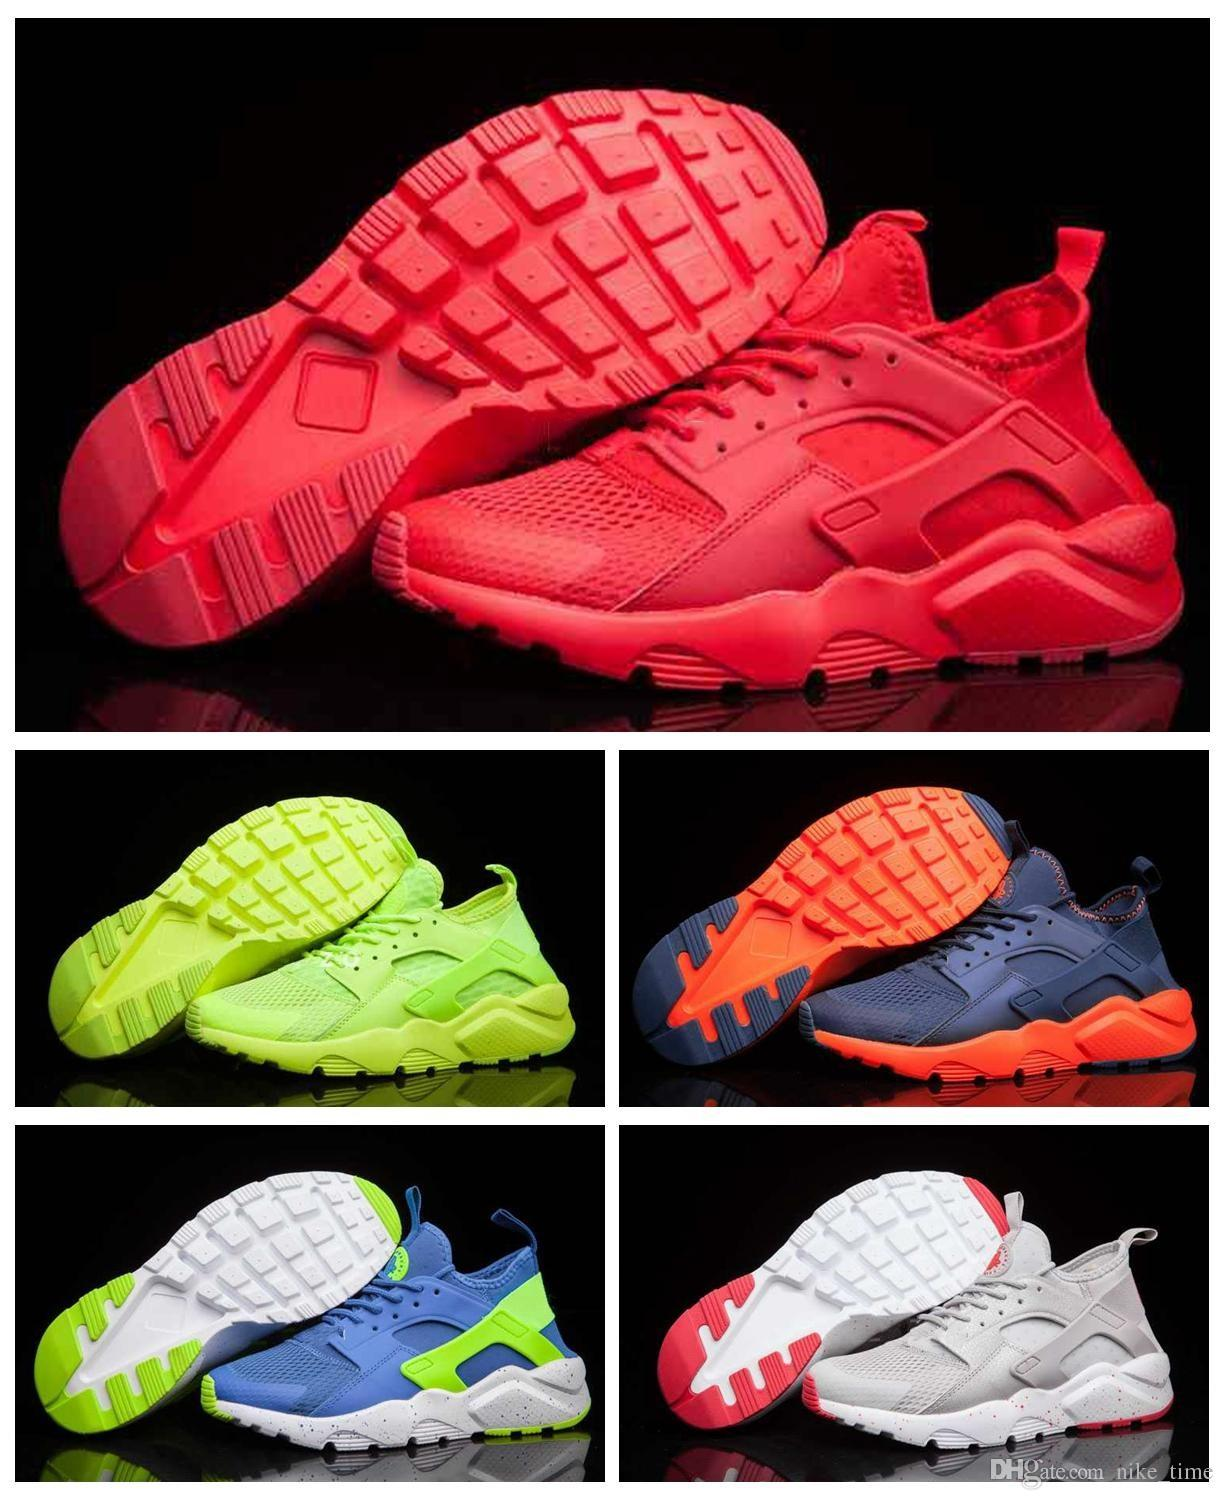 size 40 1b535 42da4 2018 New Air Huarache Ultra Breathe All Red Mesh Huarache Shoes Men And Women S  Air Huaraches Running Sneakers Size 36 46 Winter Running Shoes White Running  ...